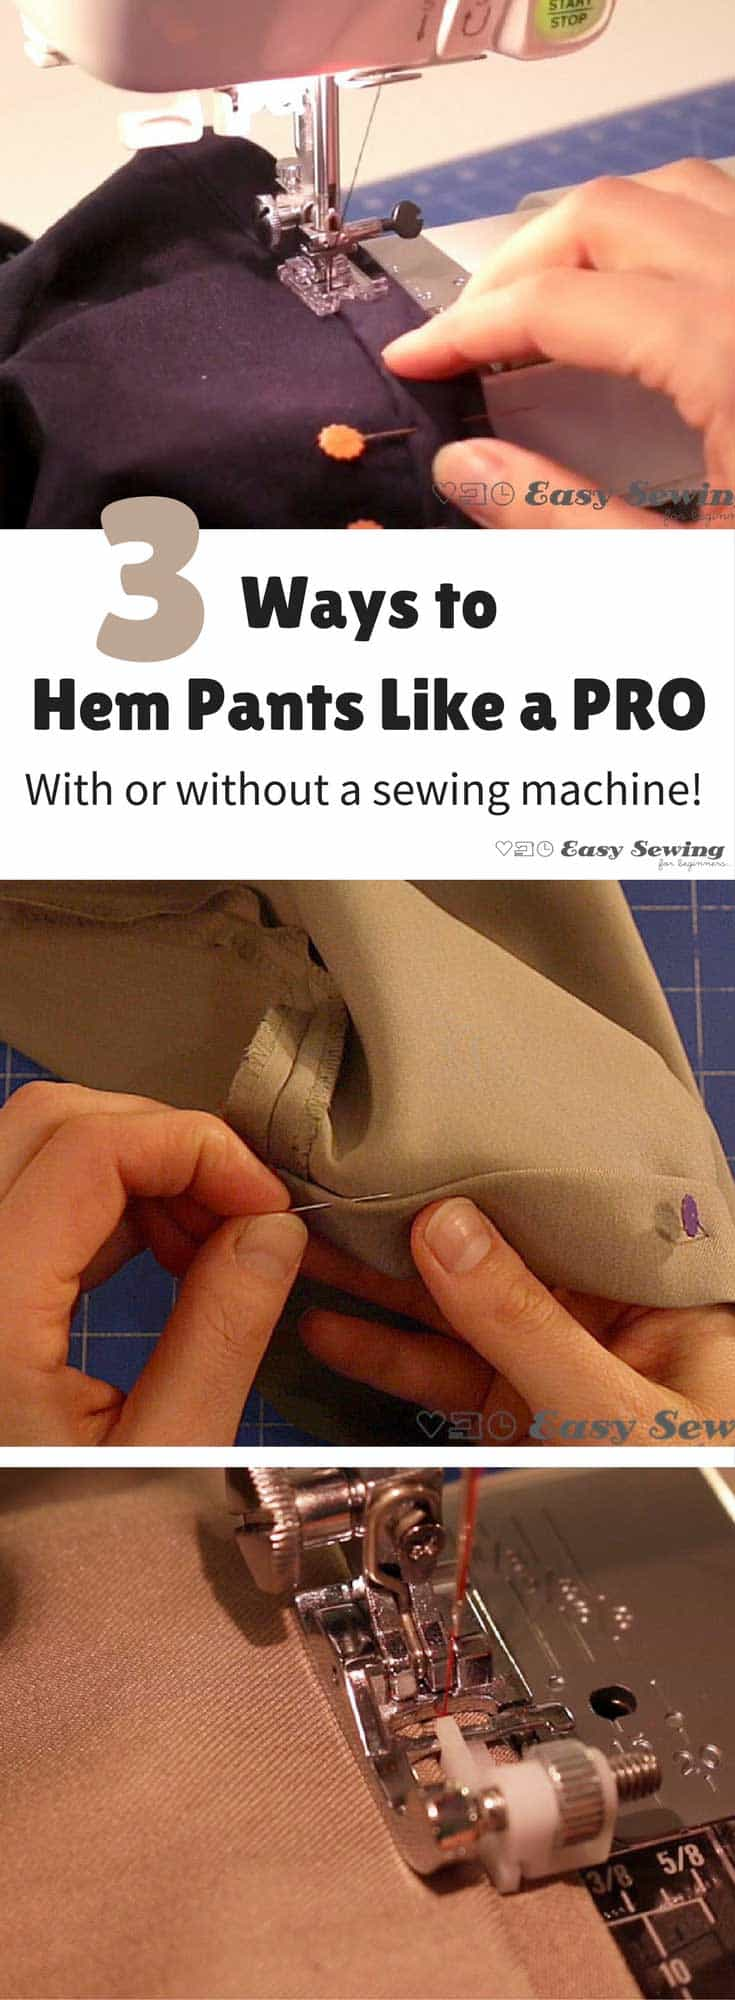 3 ways to hem pants like a PRO! Great links to step by step tutorials.